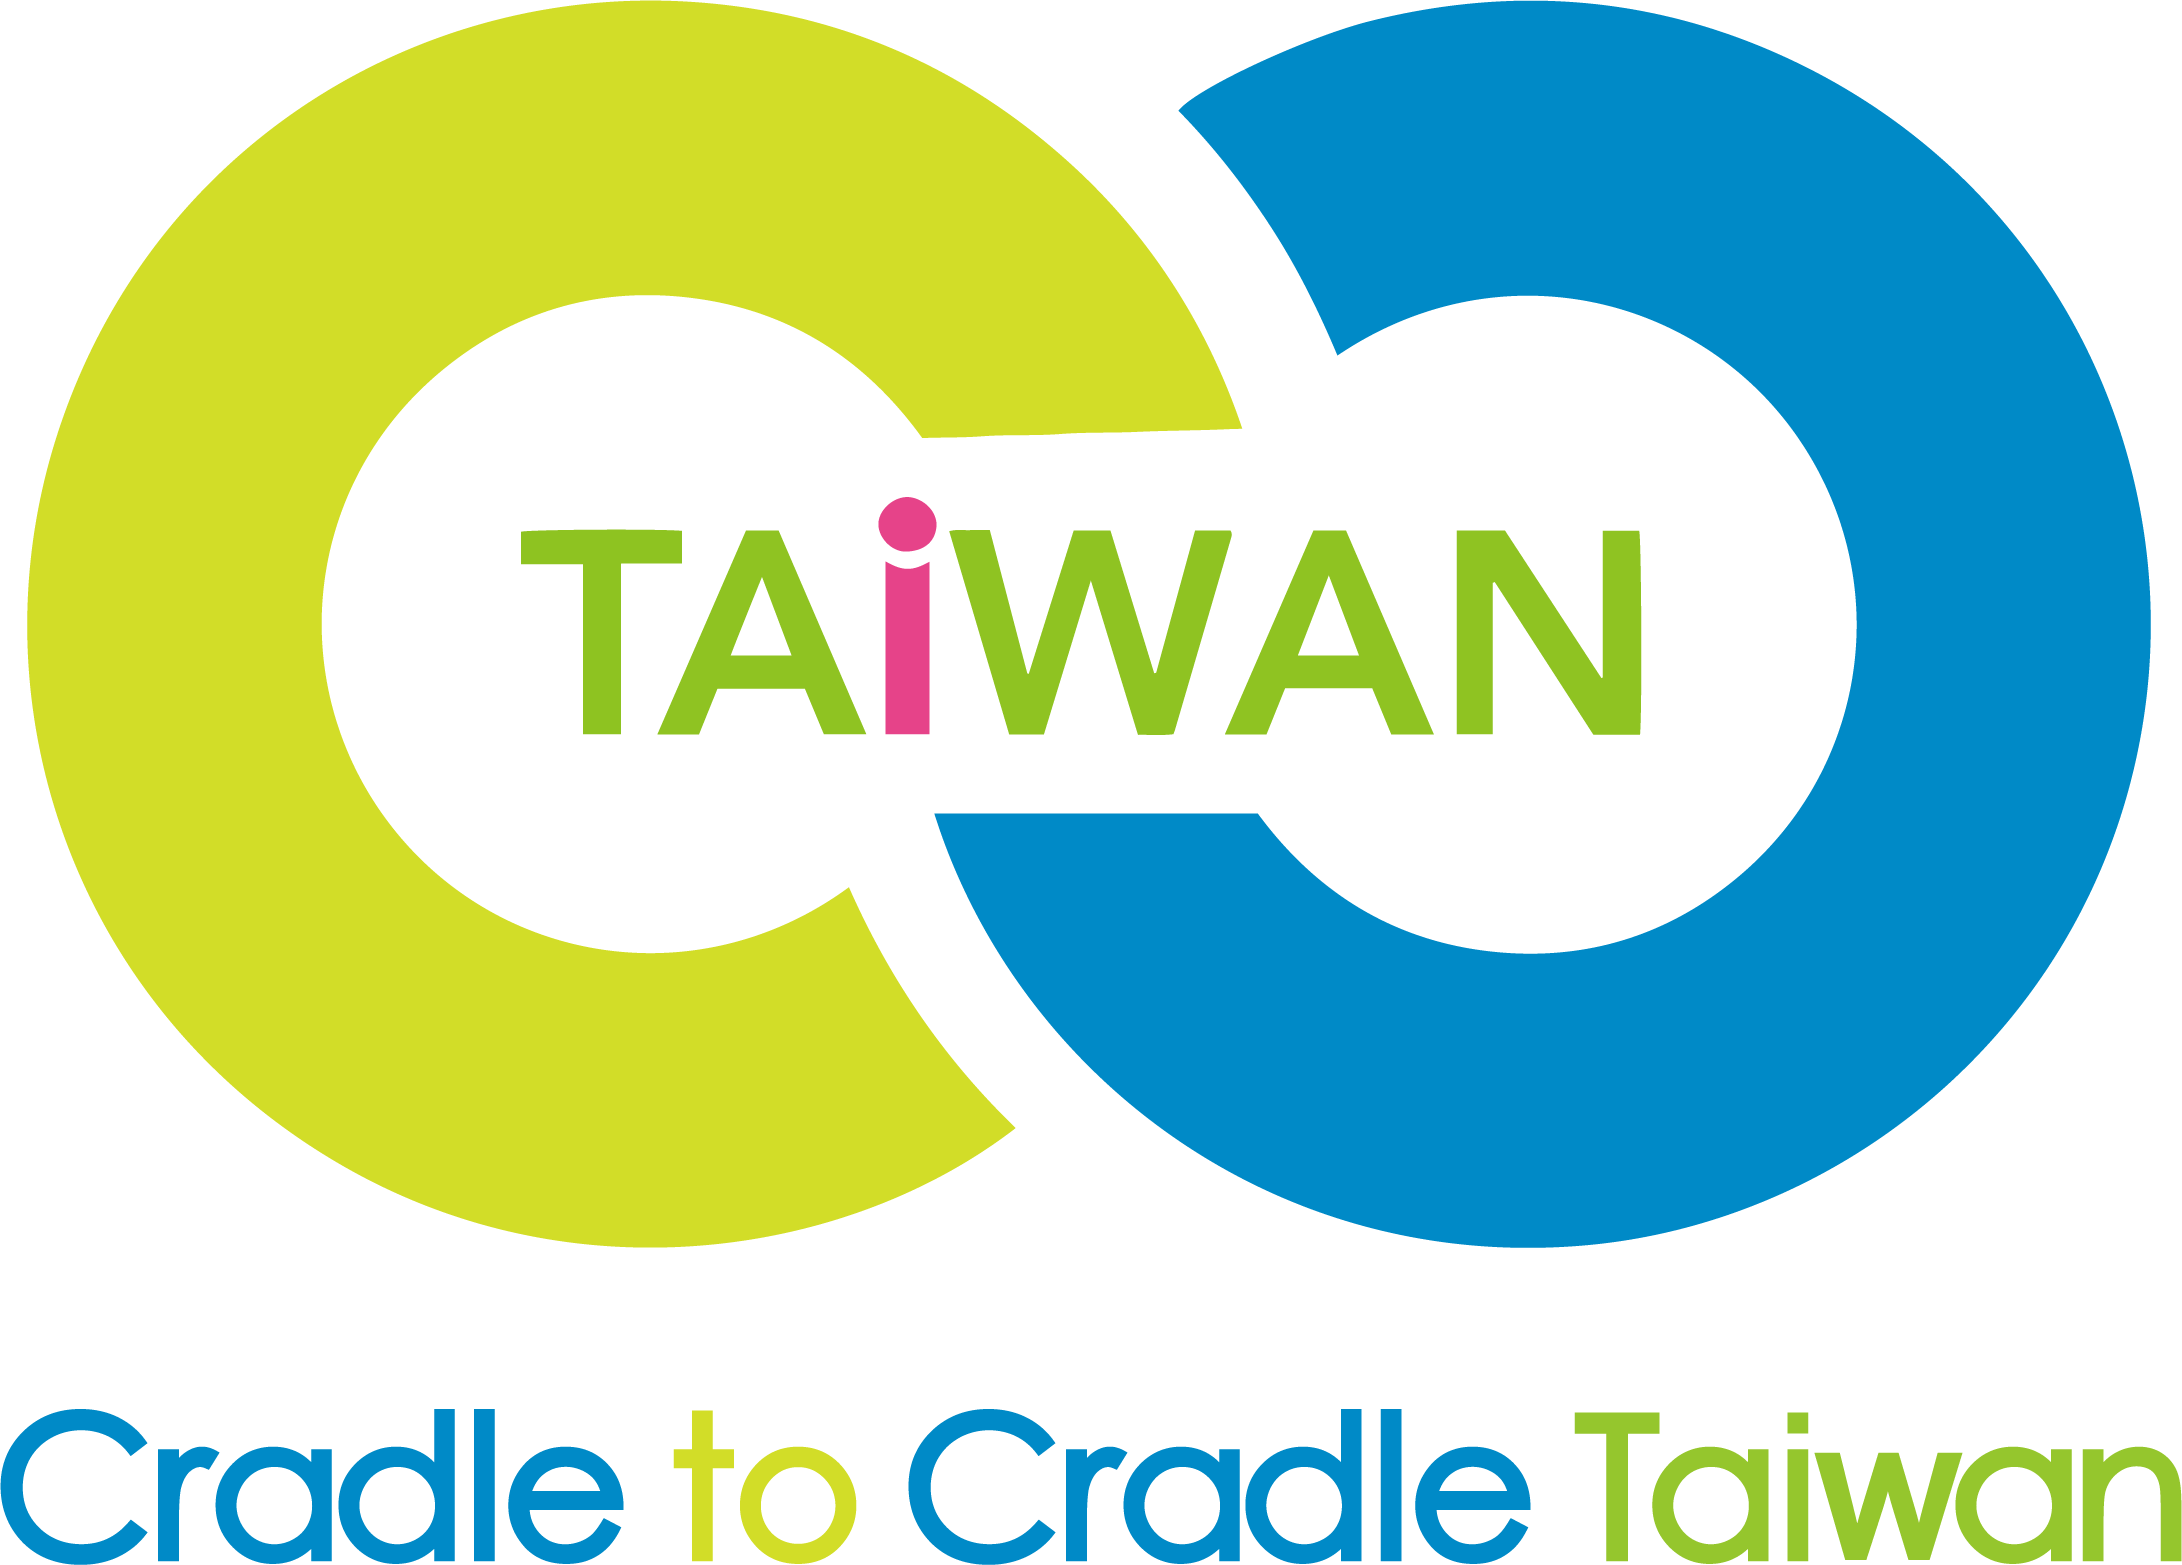 Taiwan_Cradle-to-Cradle_Strategic_Alliance